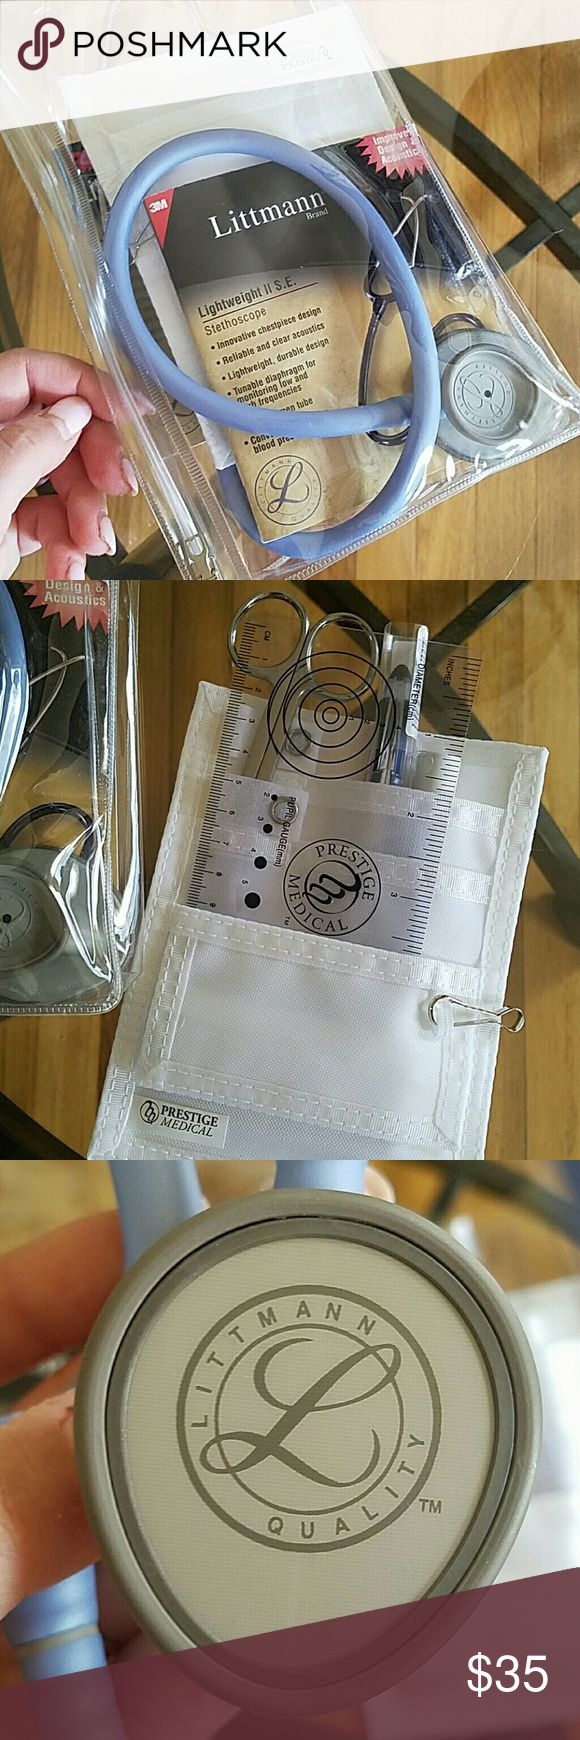 LITTMANN STETHOSCOPE Lightweight II S.E Stethoscope. Never used. Bought for nursing school. Ended up being provided with one. Accessories